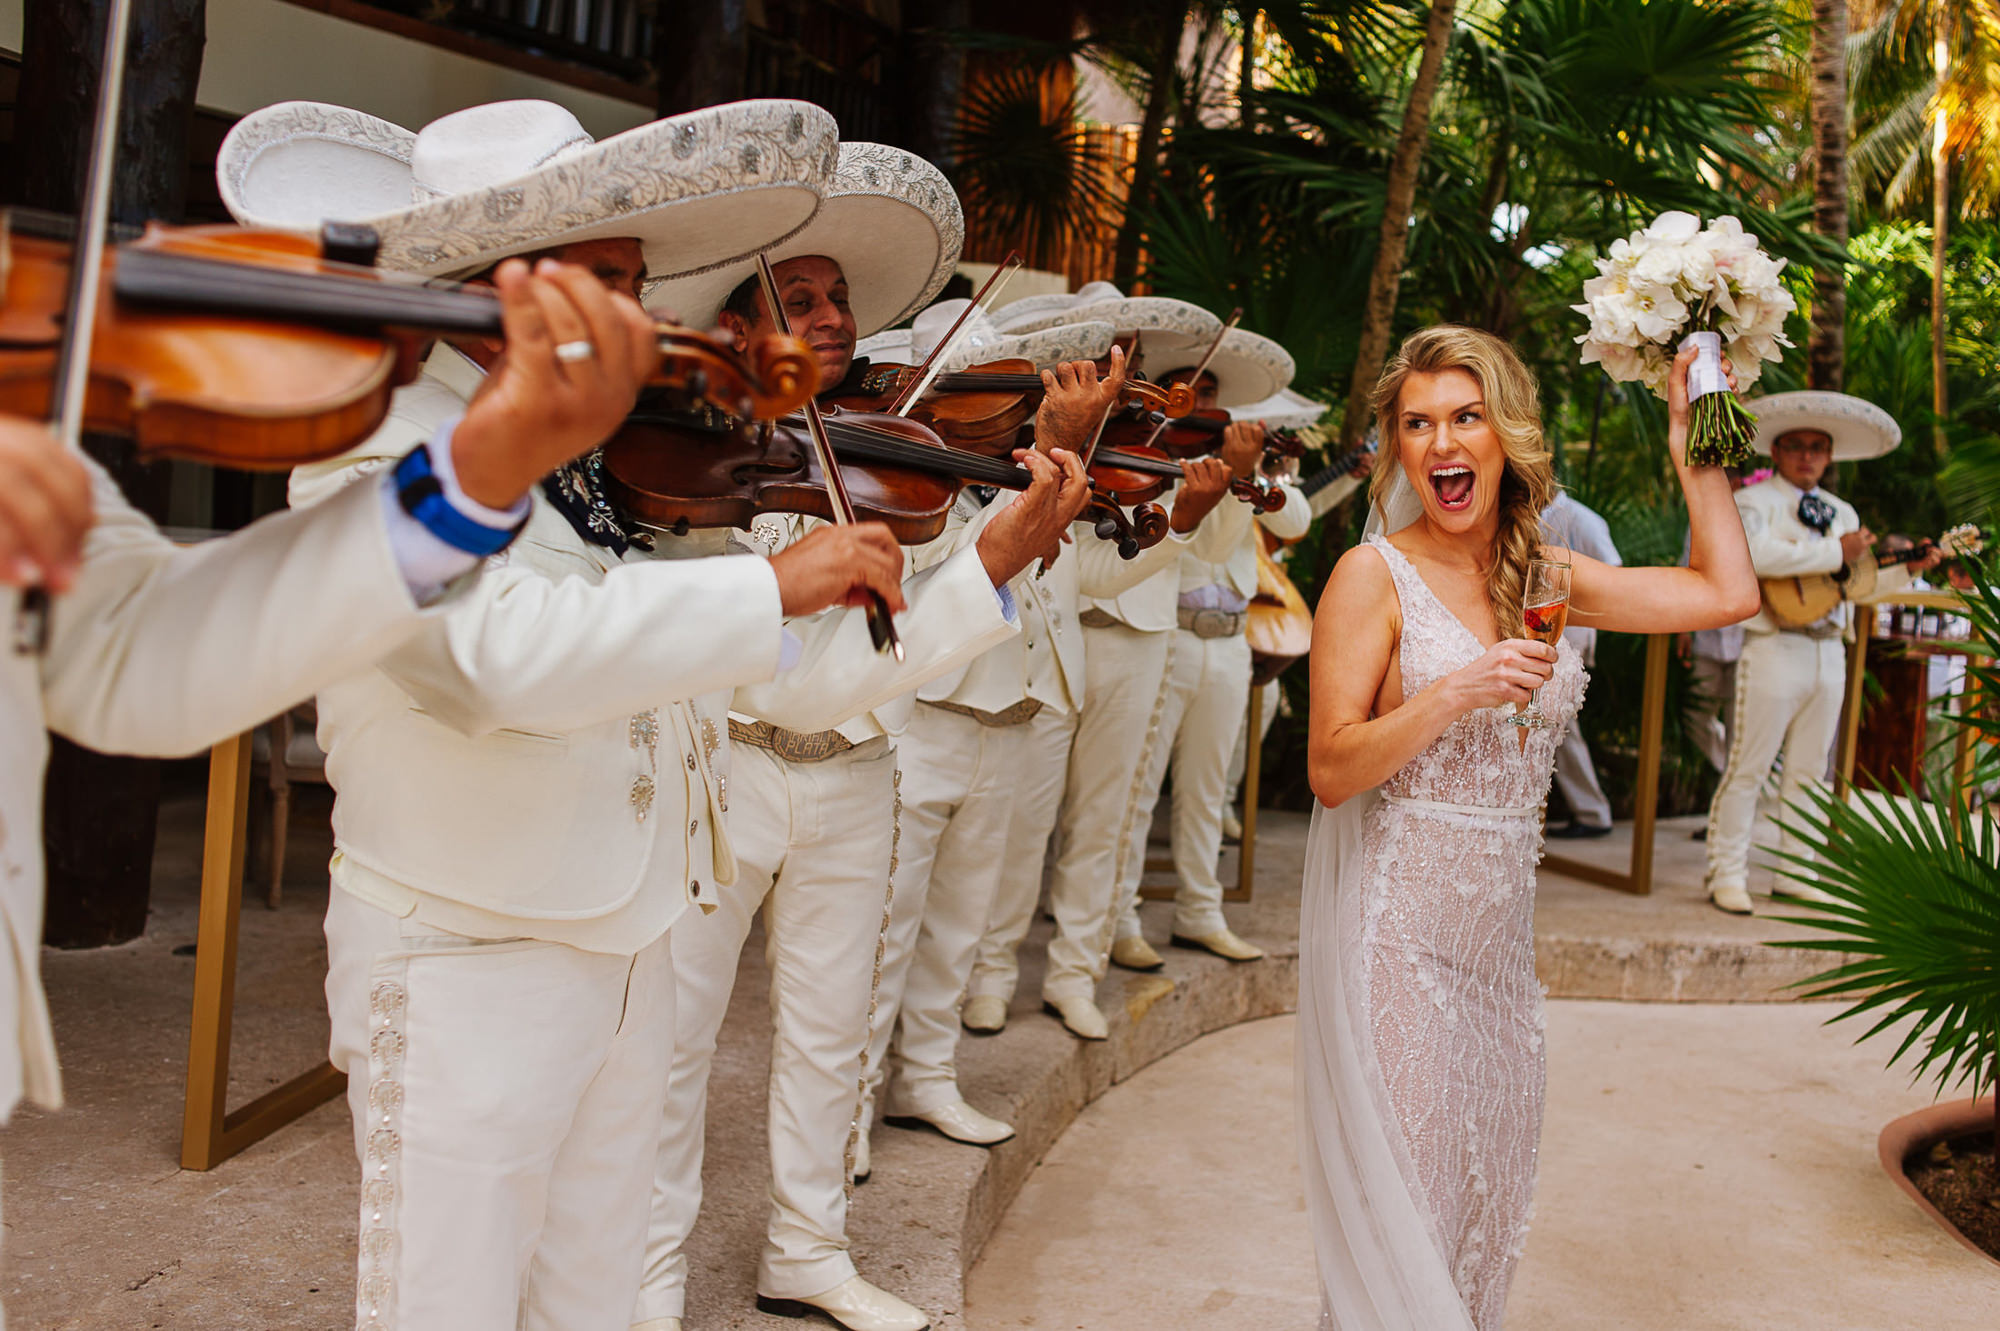 Bride dances to mariachi band, by Citlalli Rico